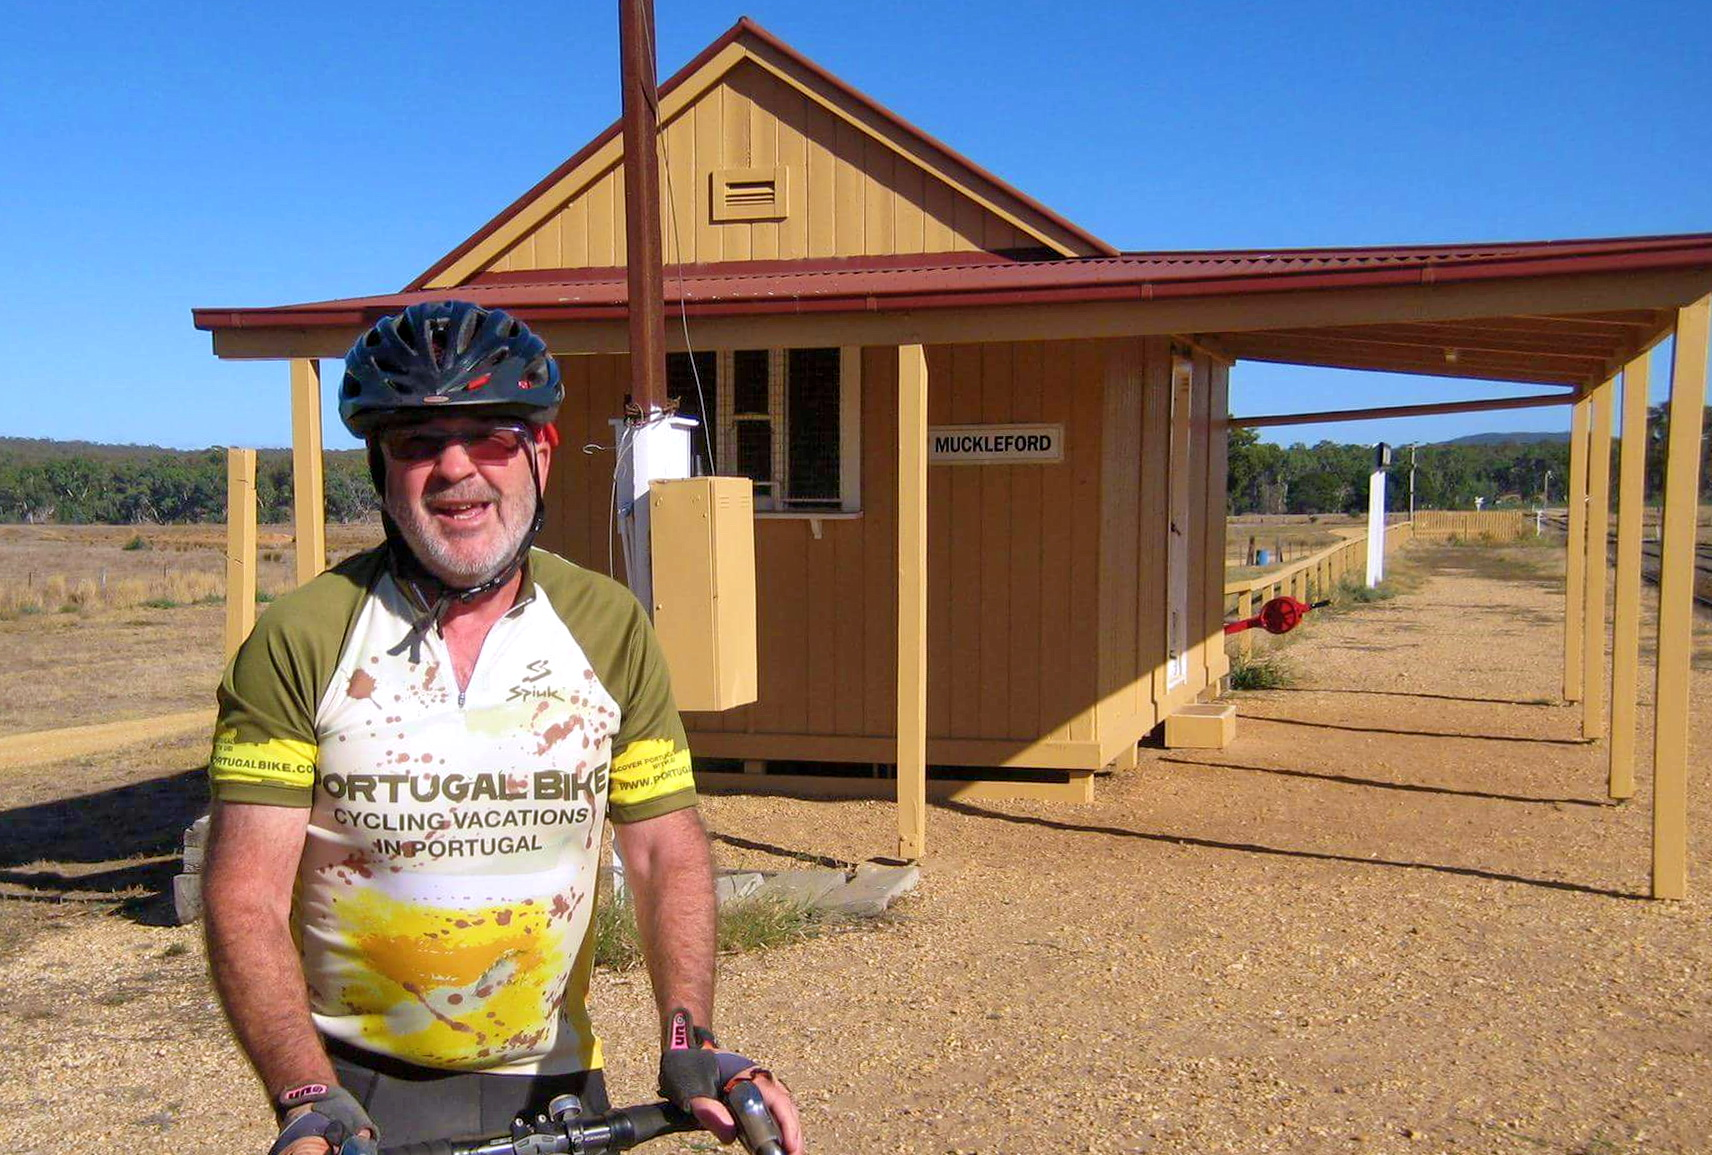 Portugal Bike Jersey in Muckleford Australia